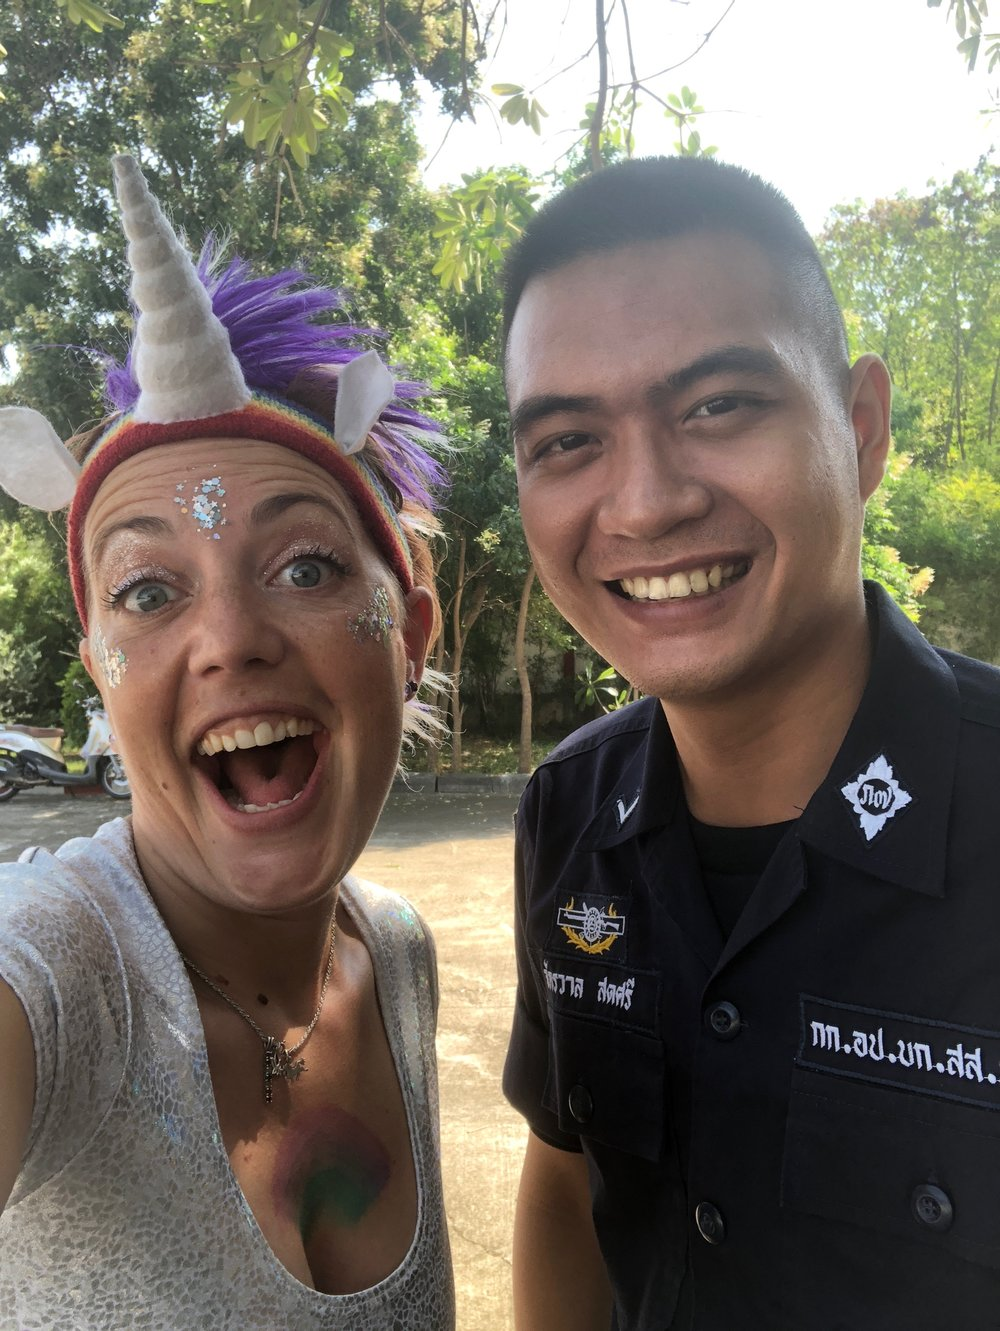 A friendly encounter with the Thai police!